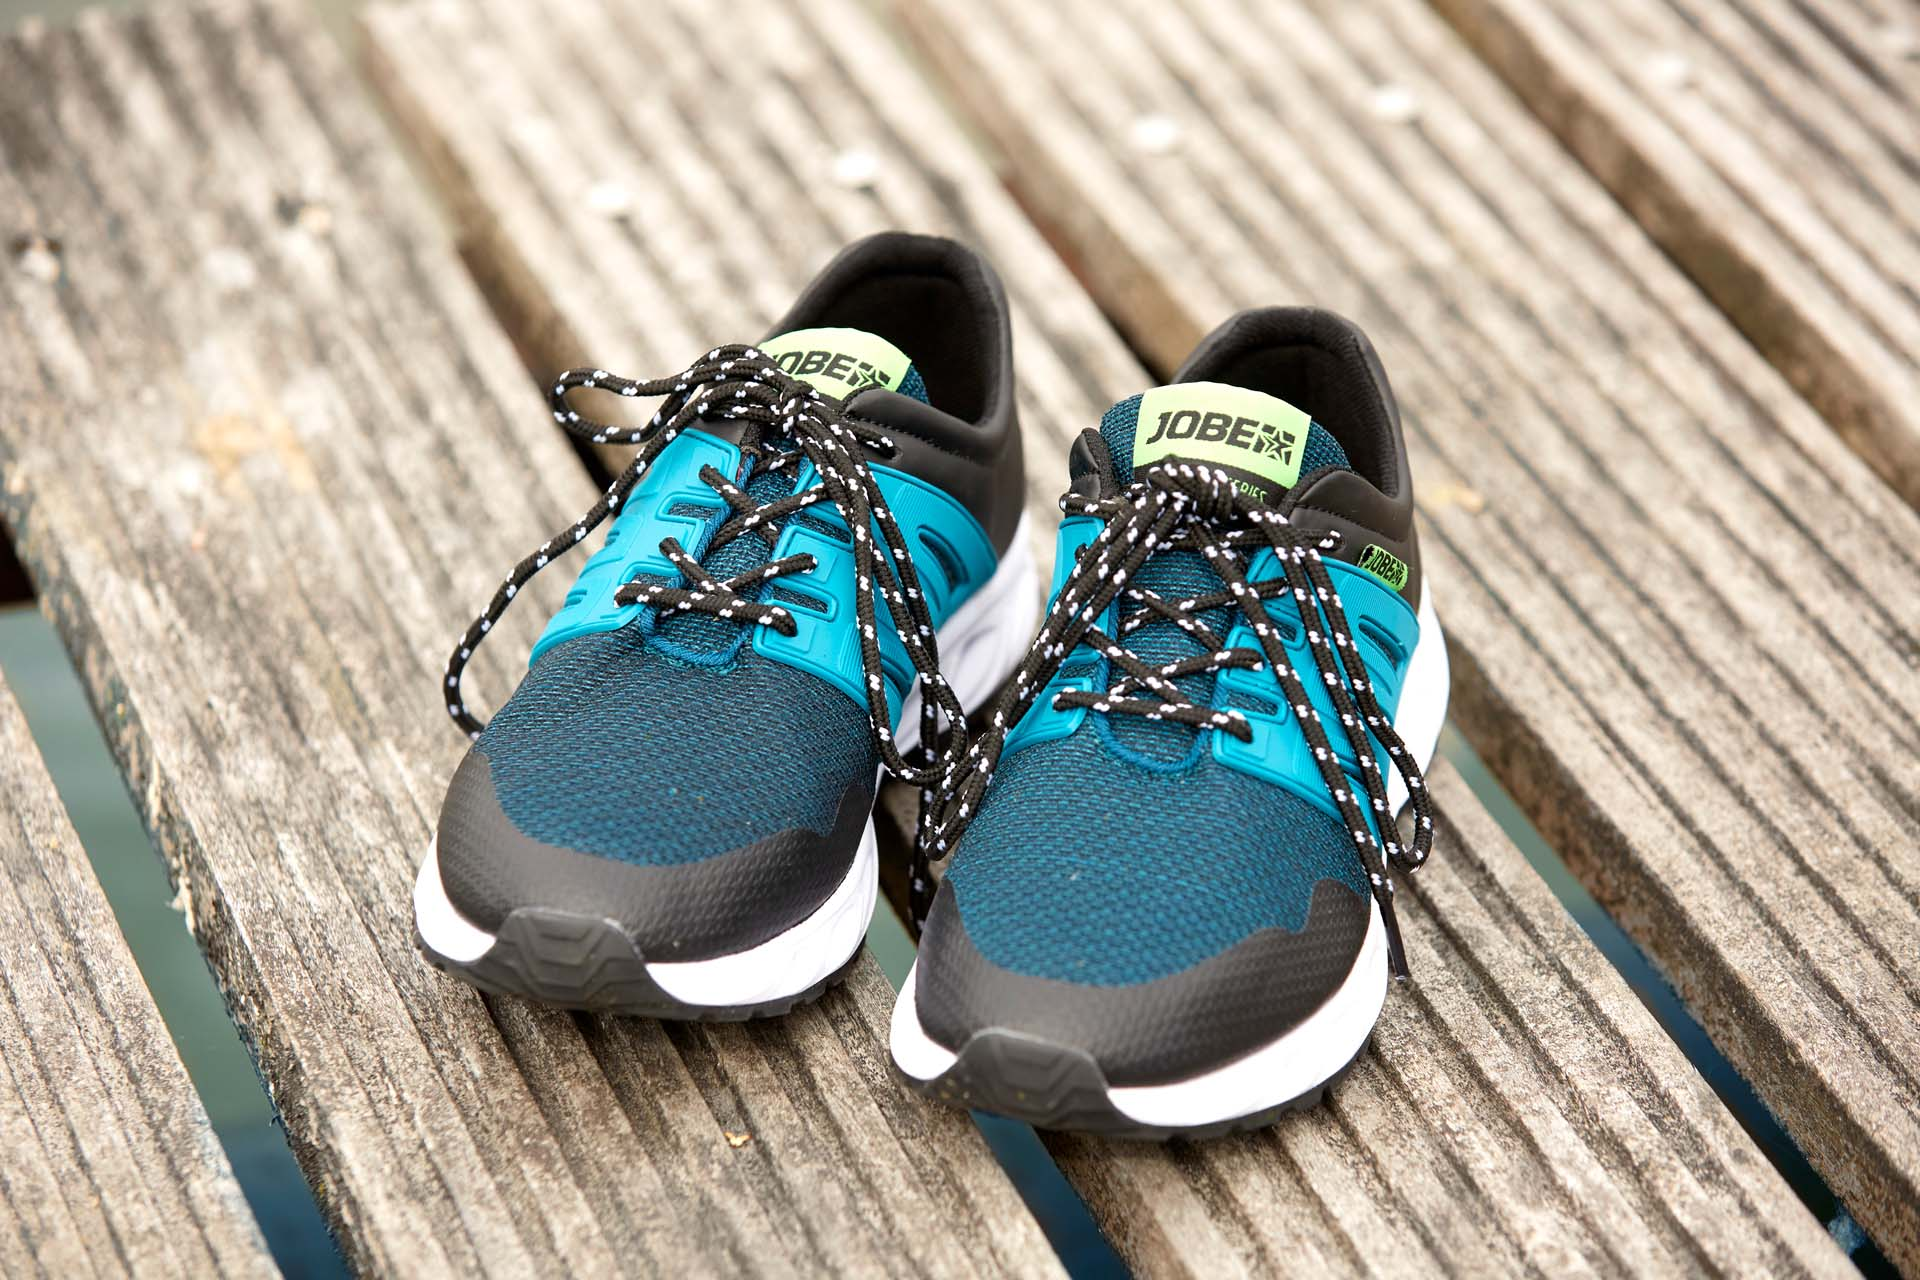 7ab2c26082b7 Jobe Discover Water Shoes High Teal - Jobe Official Website